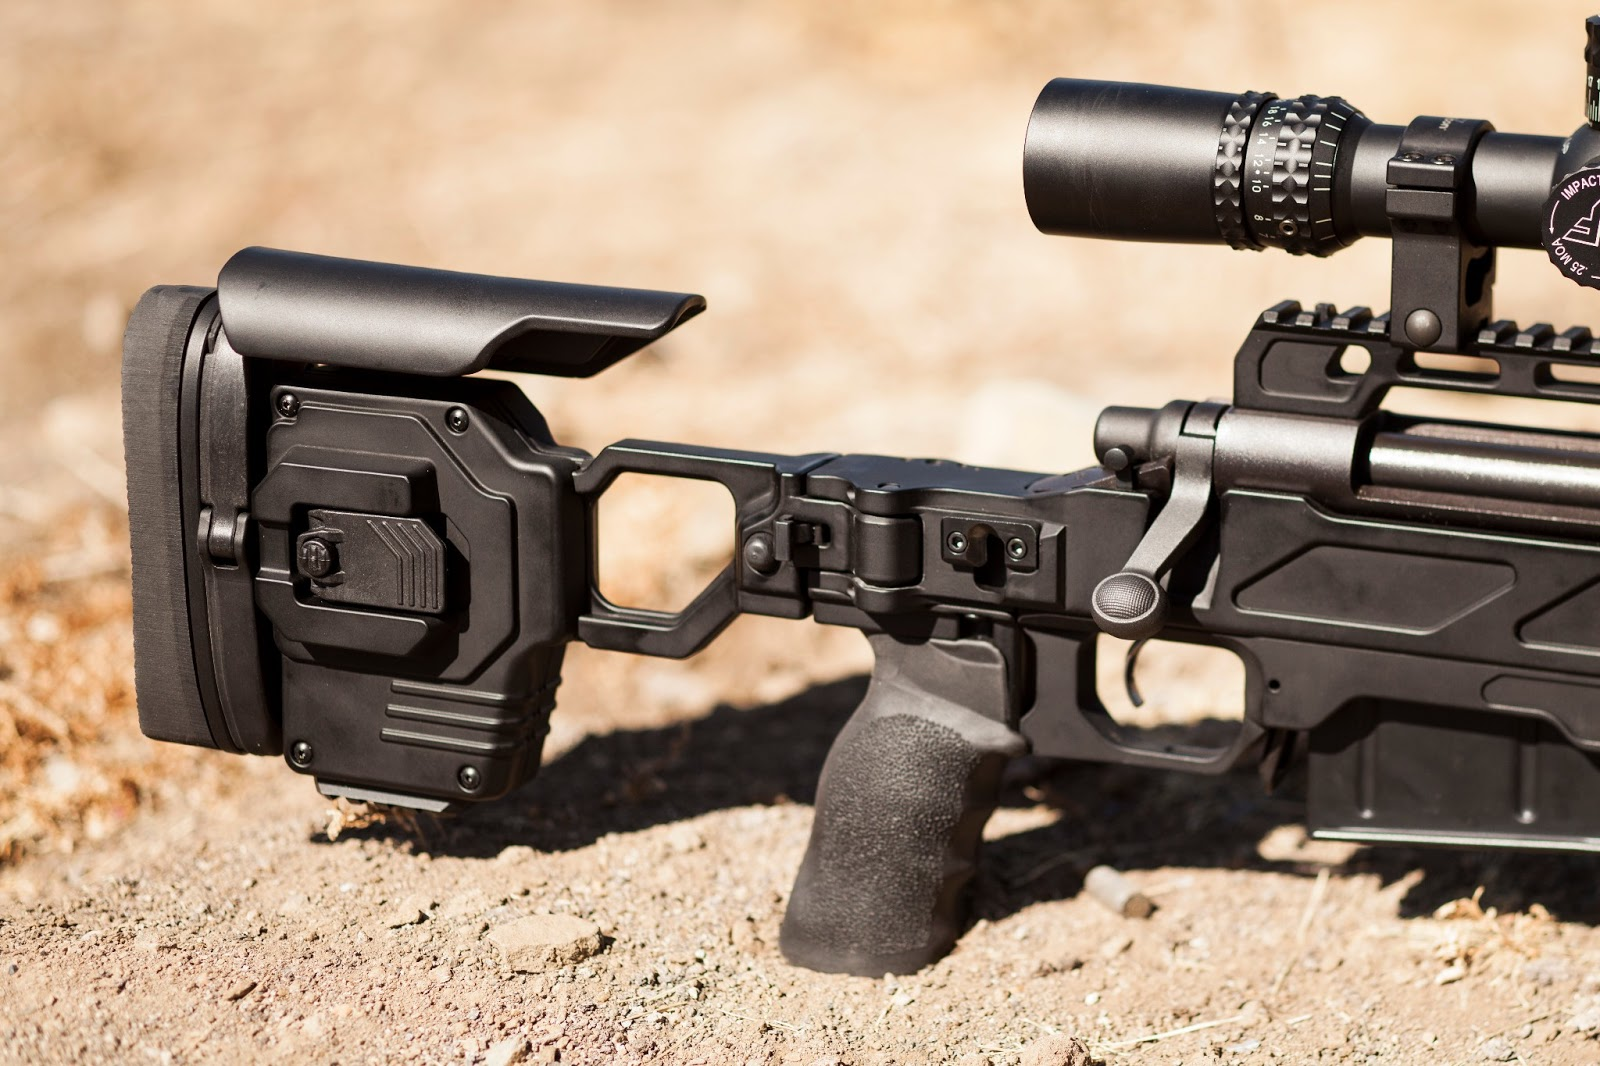 Full Of Weapons: CADEX Strike 33 Gen 2 Sniper Chassis System